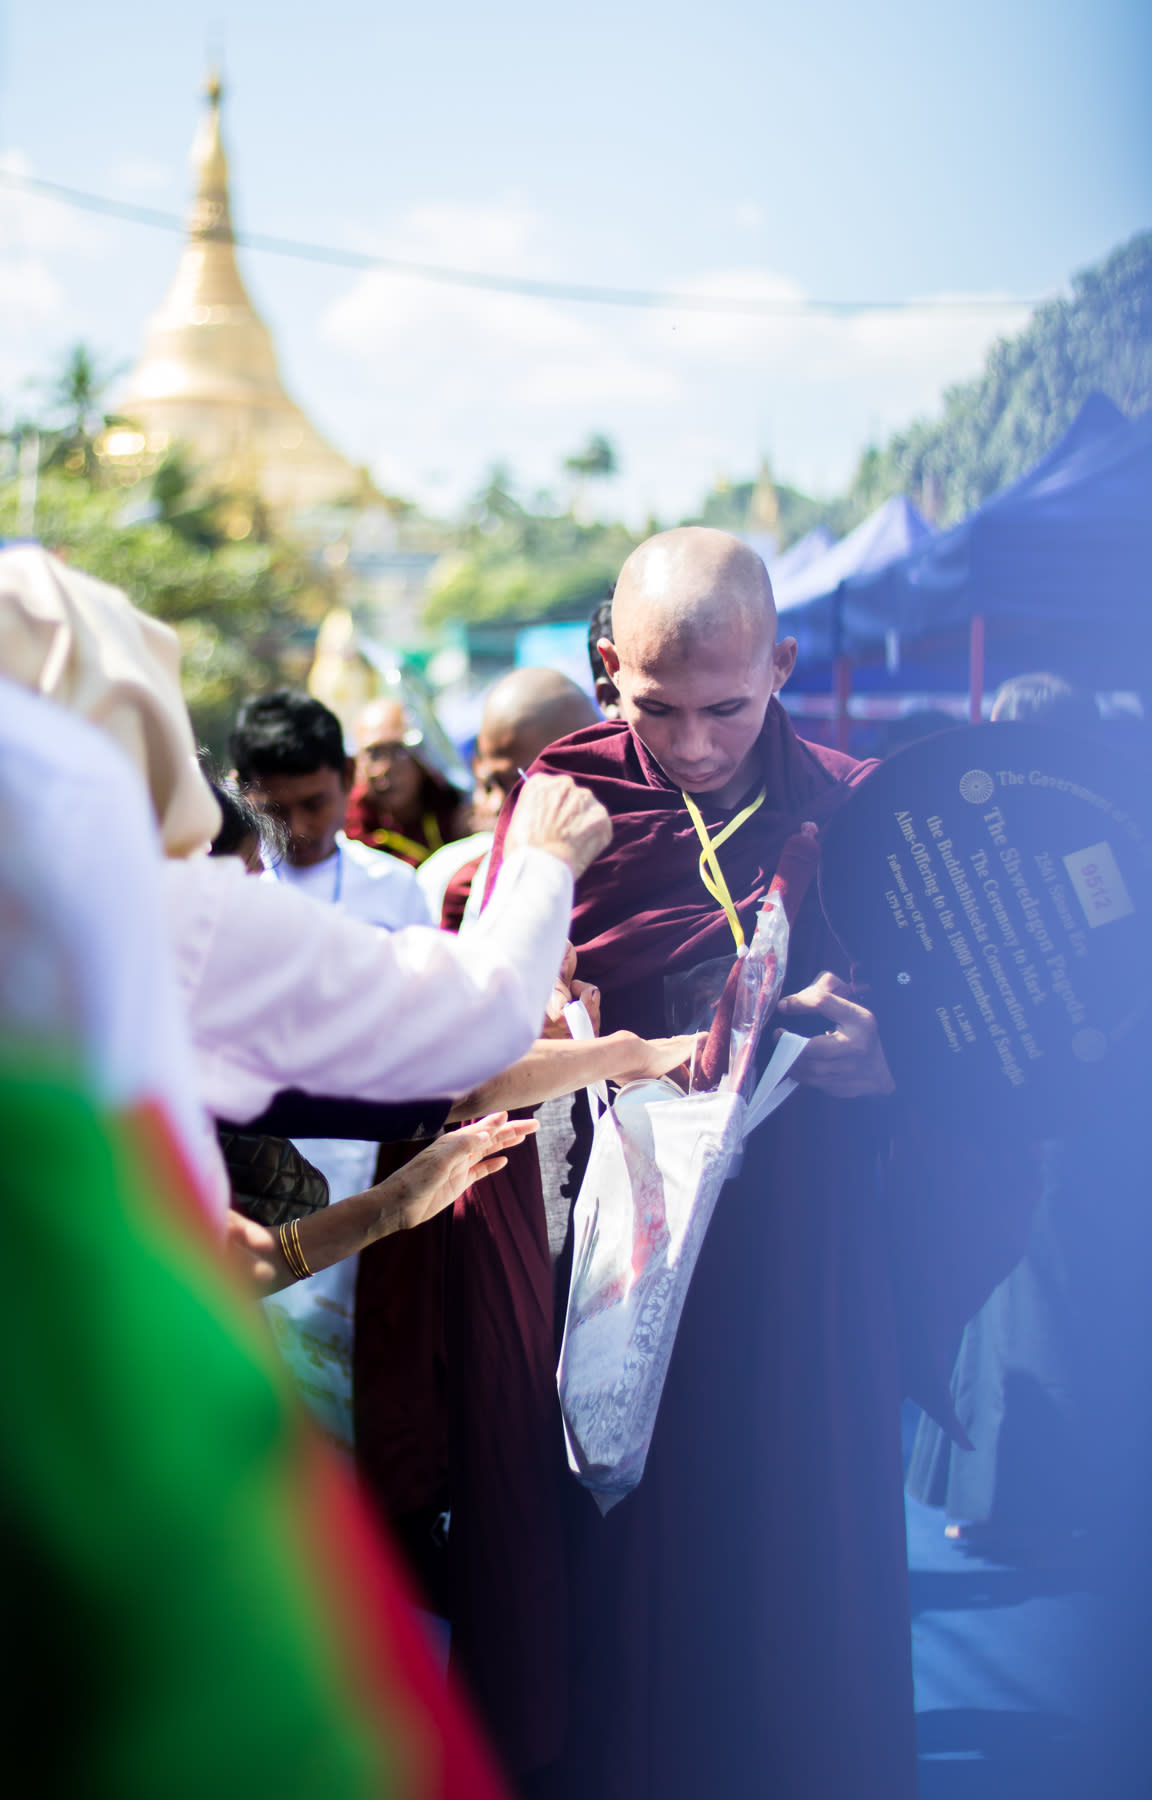 Monk receiving donation in front of Shwedagon Pagoda